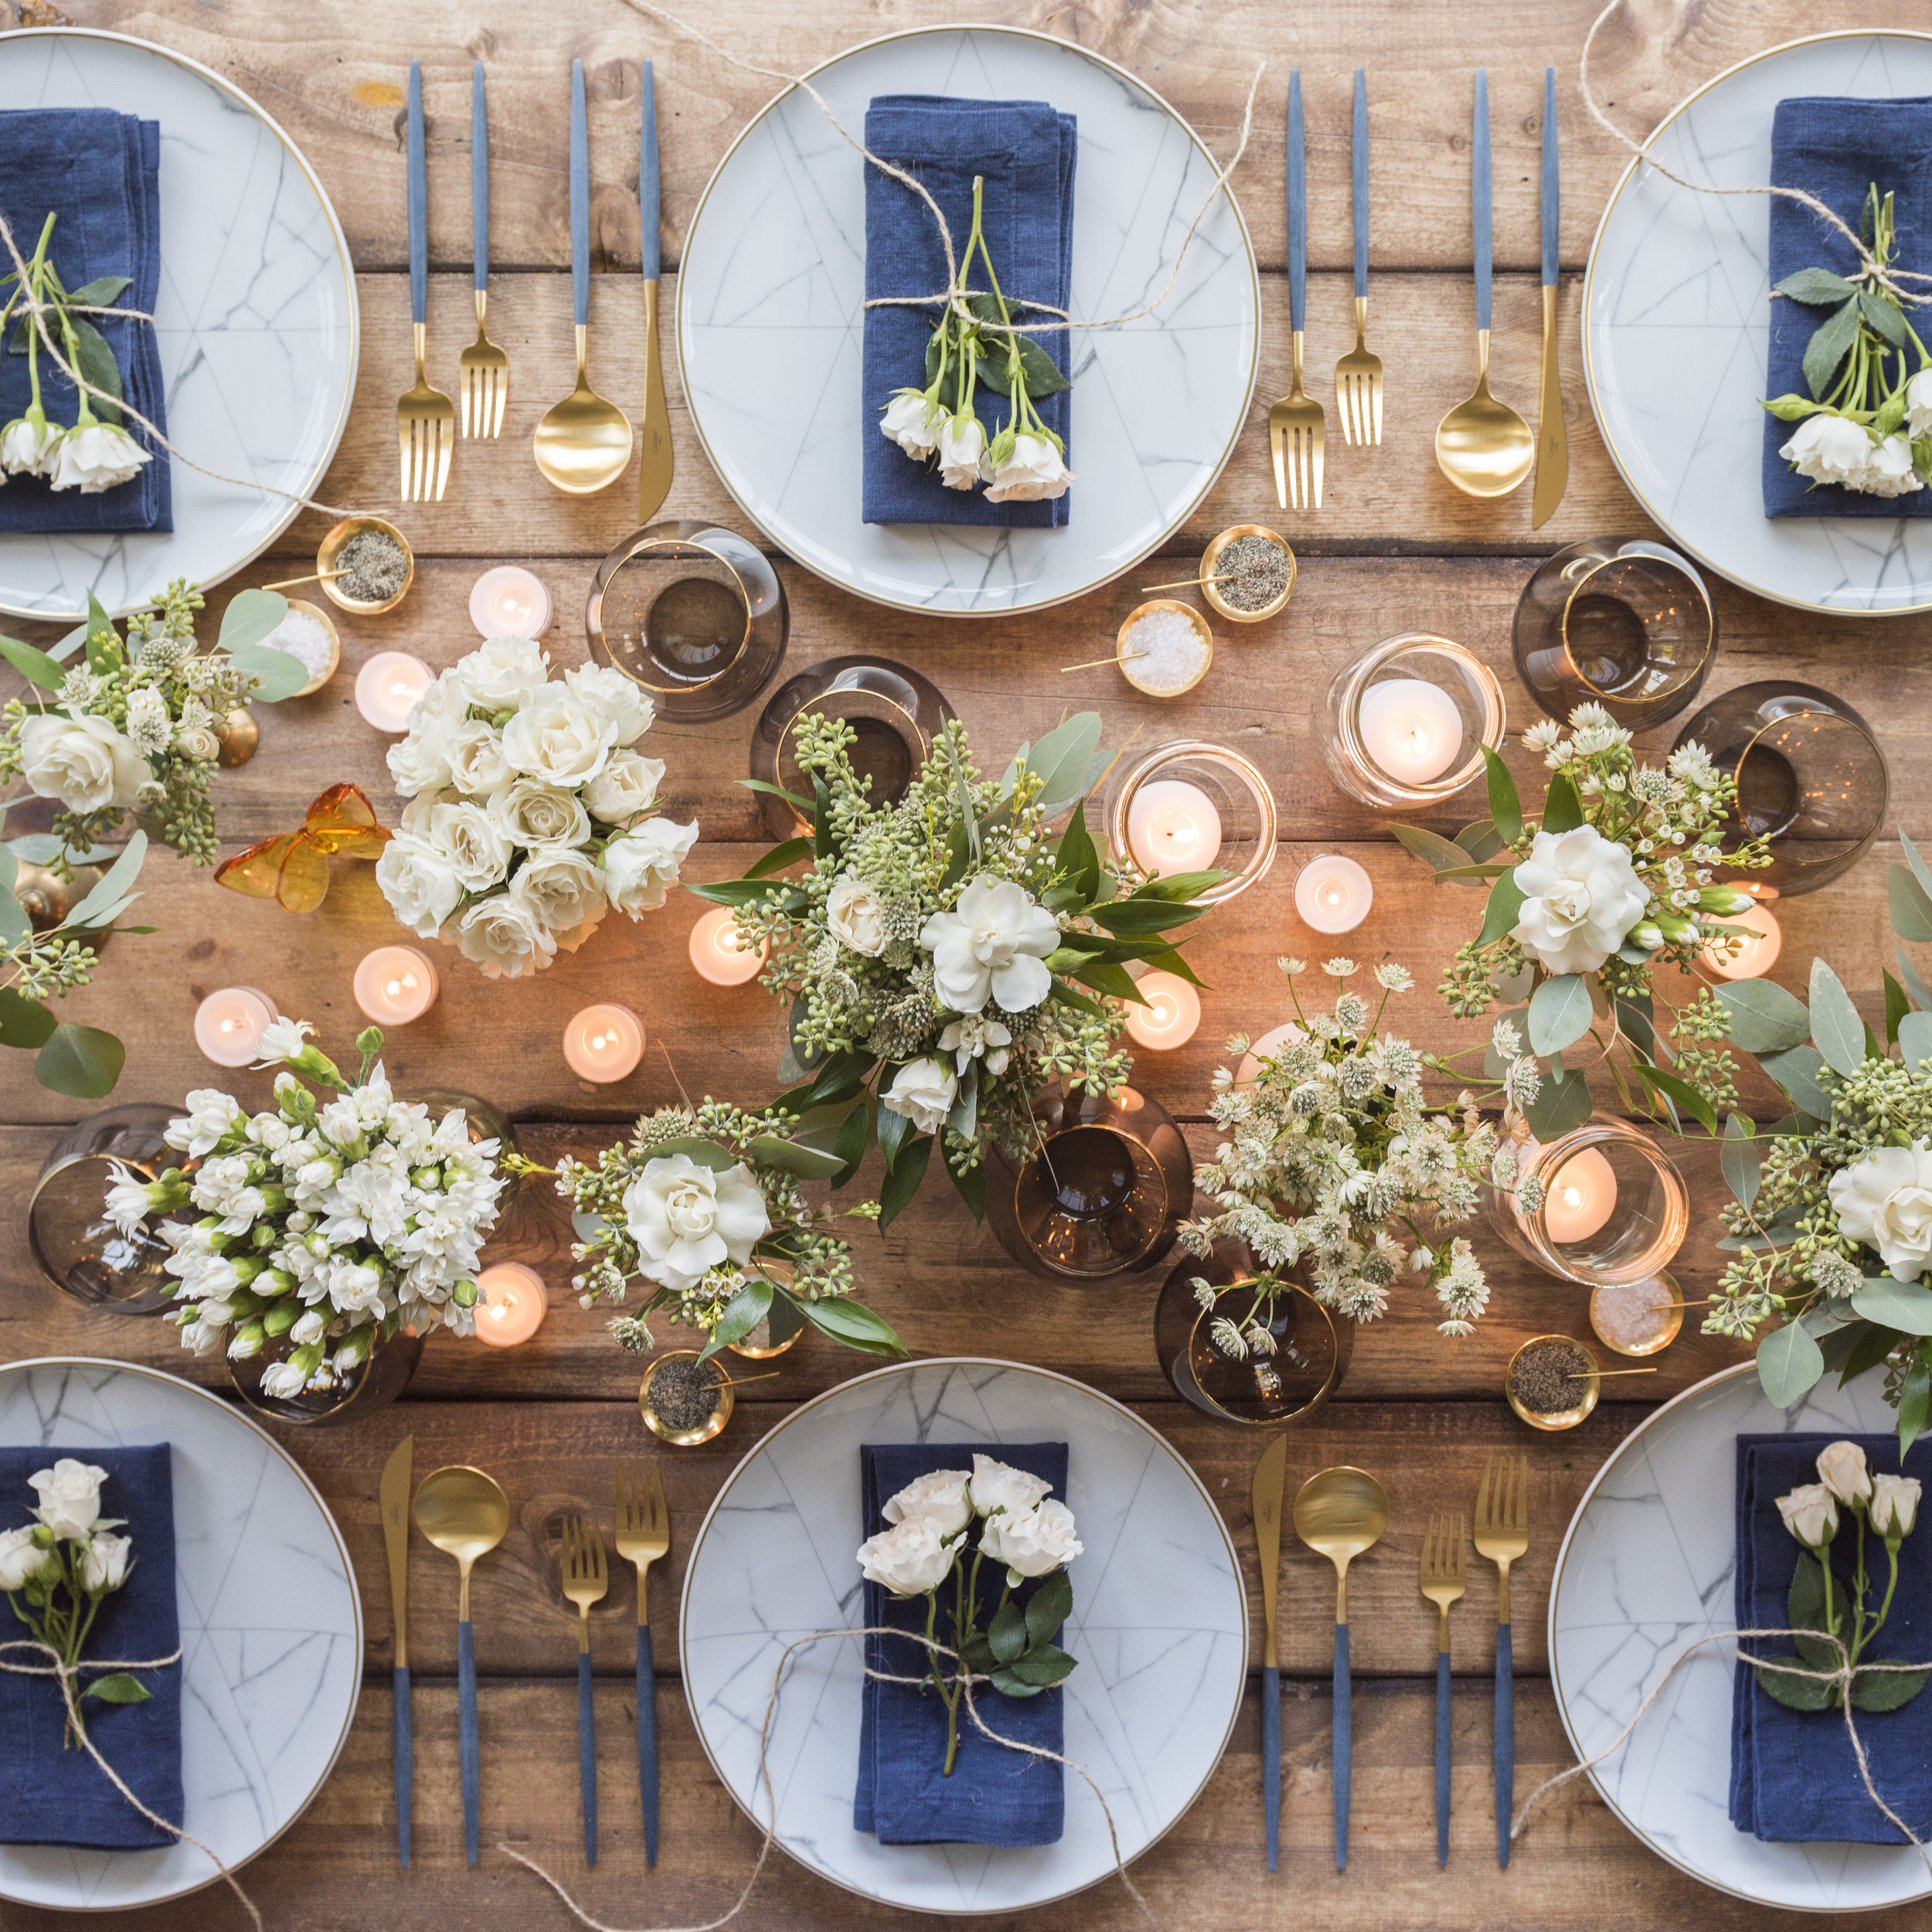 RENT: Carrara Dinnerware + Goa Flatware in Brushed 24k Gold/Blue + Bella 24k Gold Rimmed Stemless Glassware in Smoke + 14k Gold Salt Cellars + Tiny Gold Spoons   SHOP: Carrara Dinnerware + Goa Flatware in Brushed 24k Gold/Blue + Bella 24k Gold Rimmed Stemless Glassware in Smoke + 14k Gold Salt Cellars + Tiny Gold Spoons